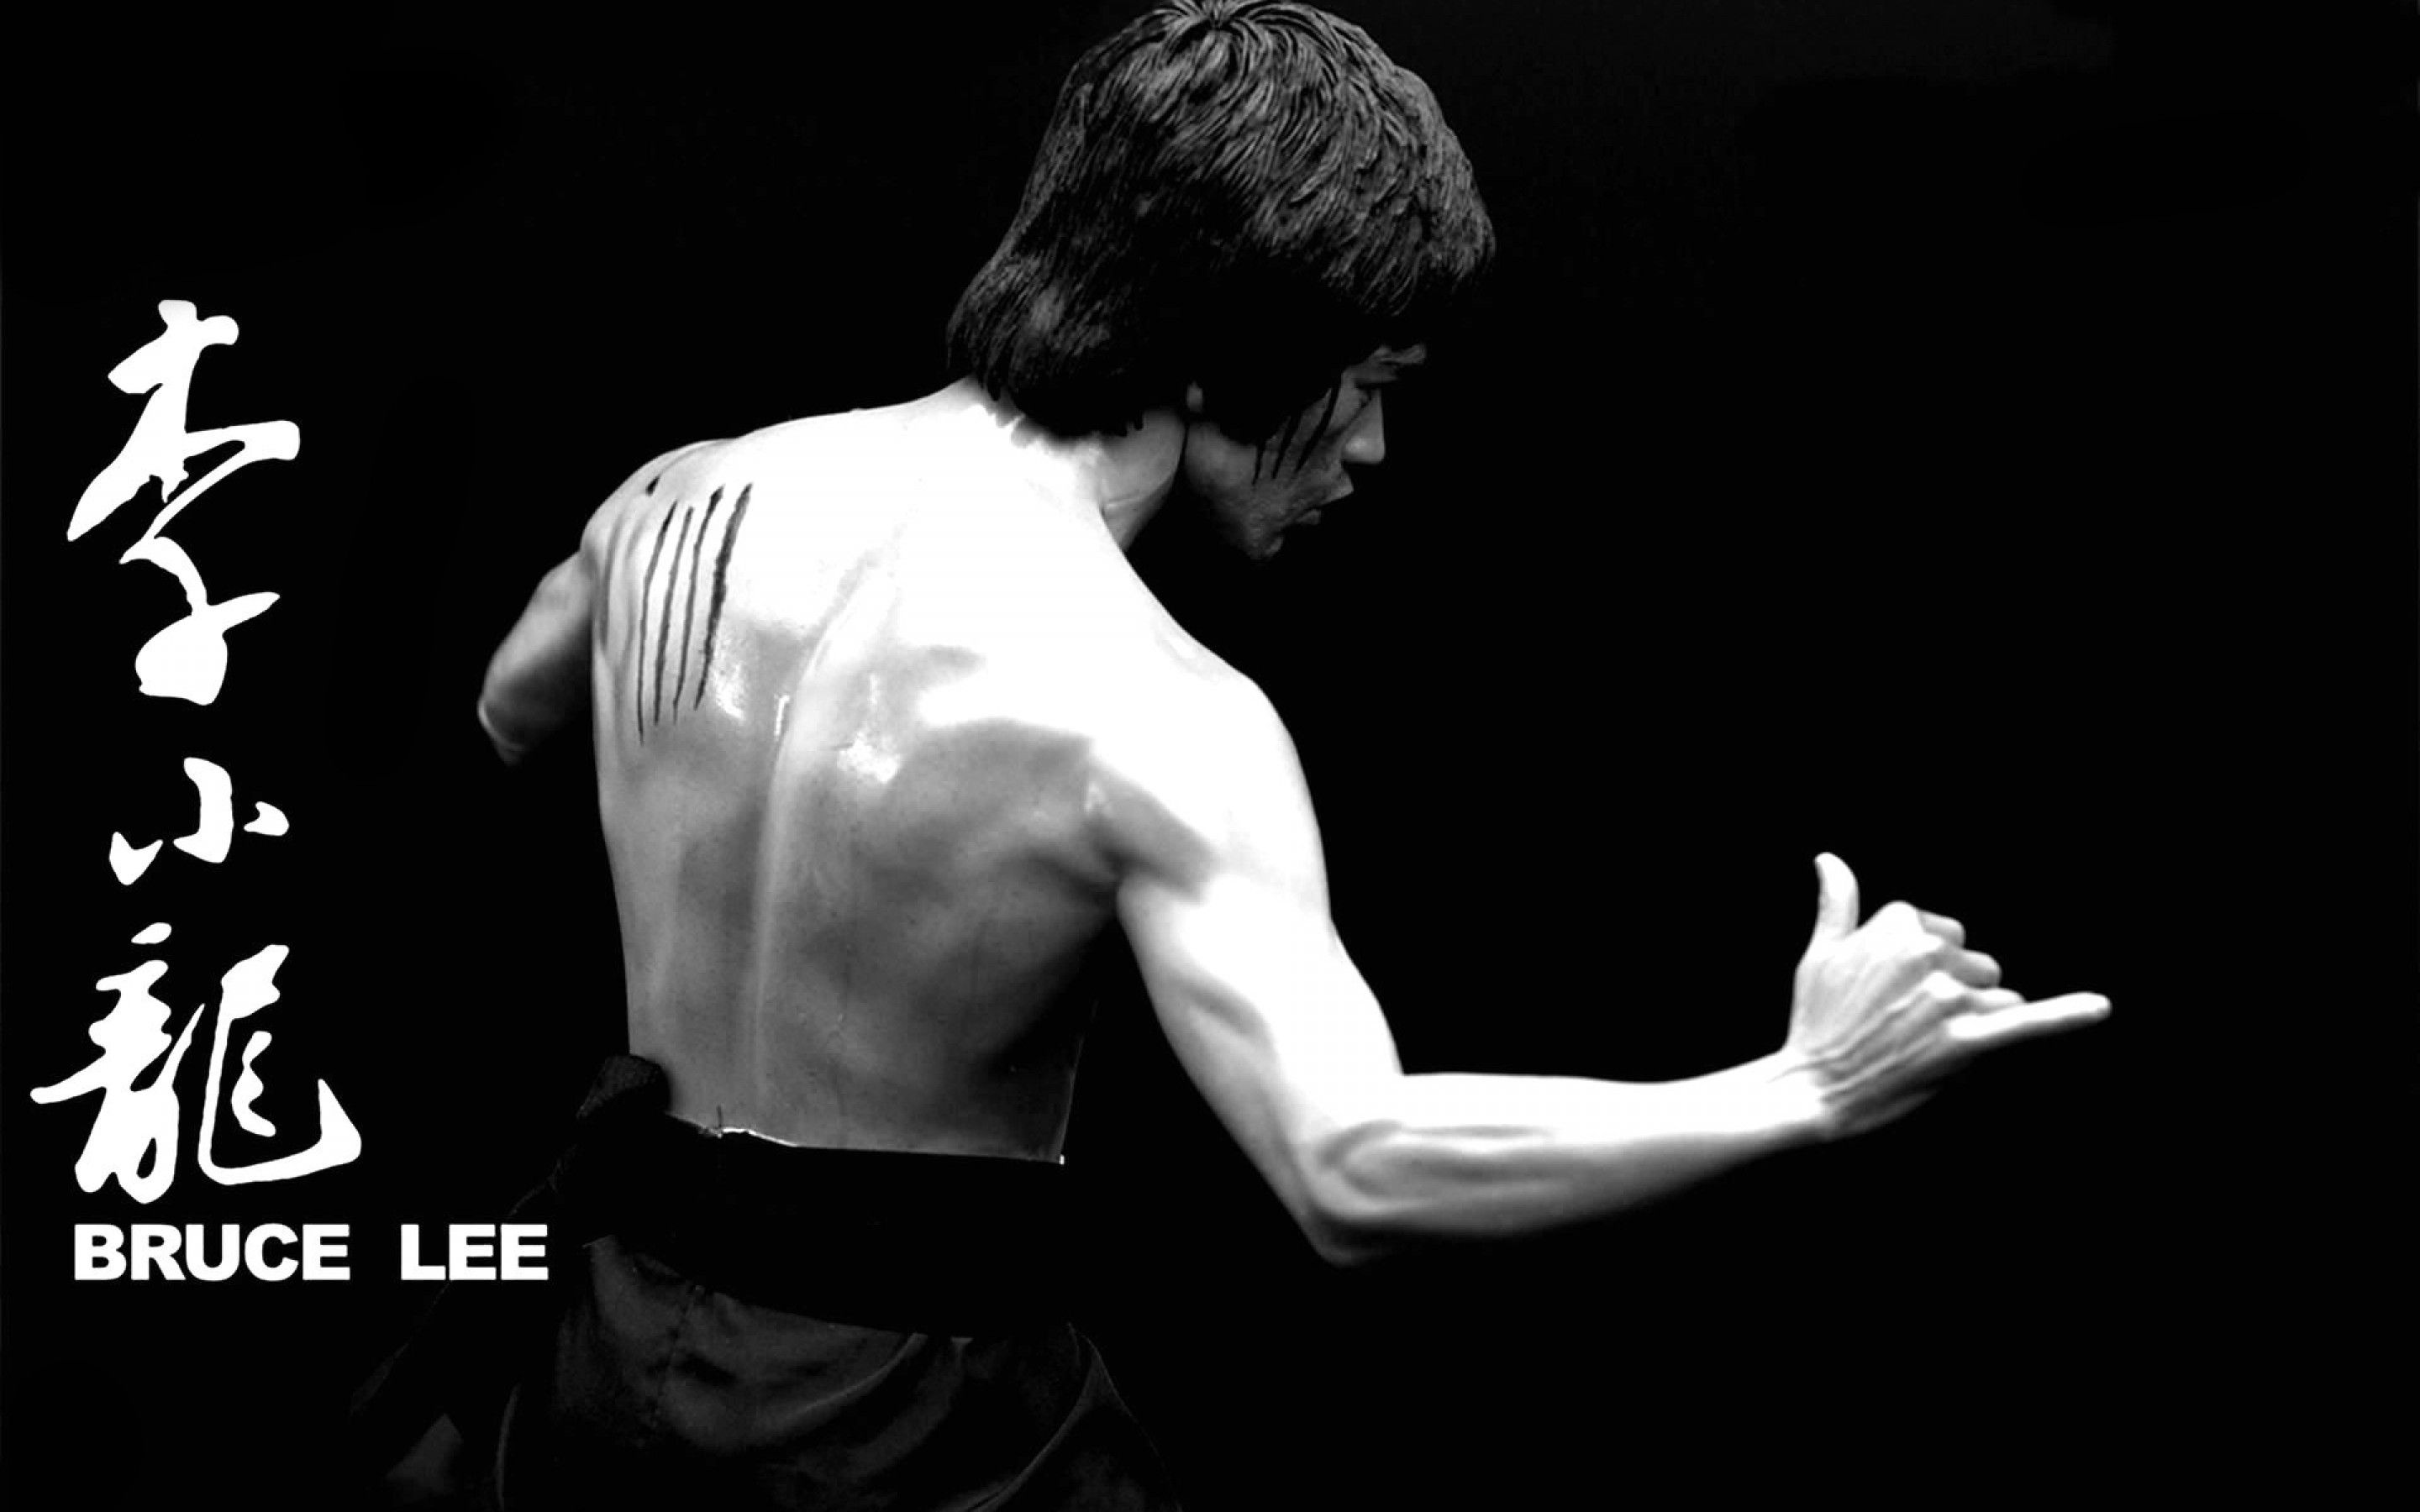 Bruce Lee HD Wallpaper for Android Free Download on